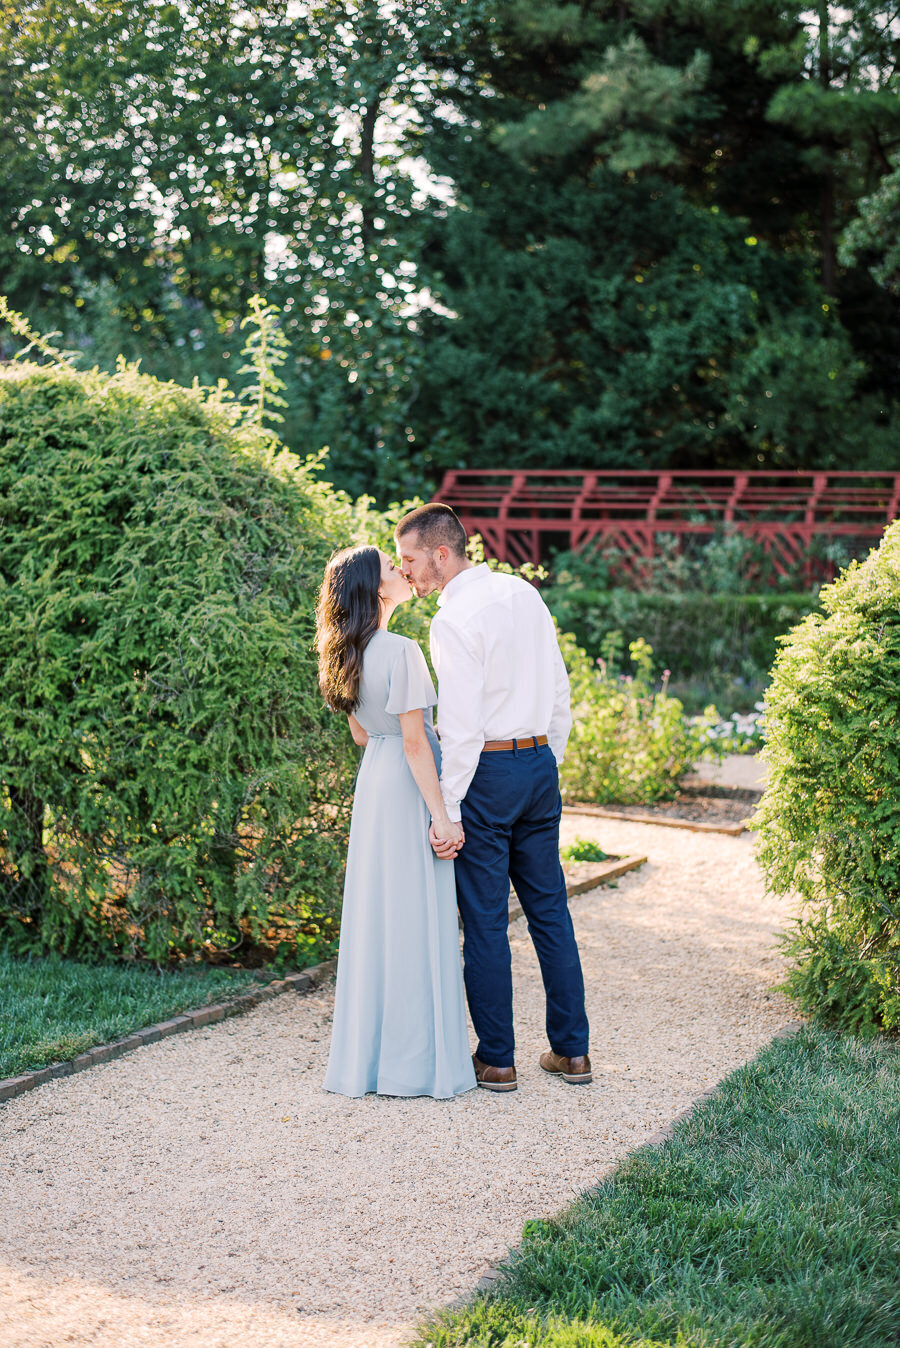 William_Paca_Gardens_Engagement_Session_Megan_Harris_Photography-10